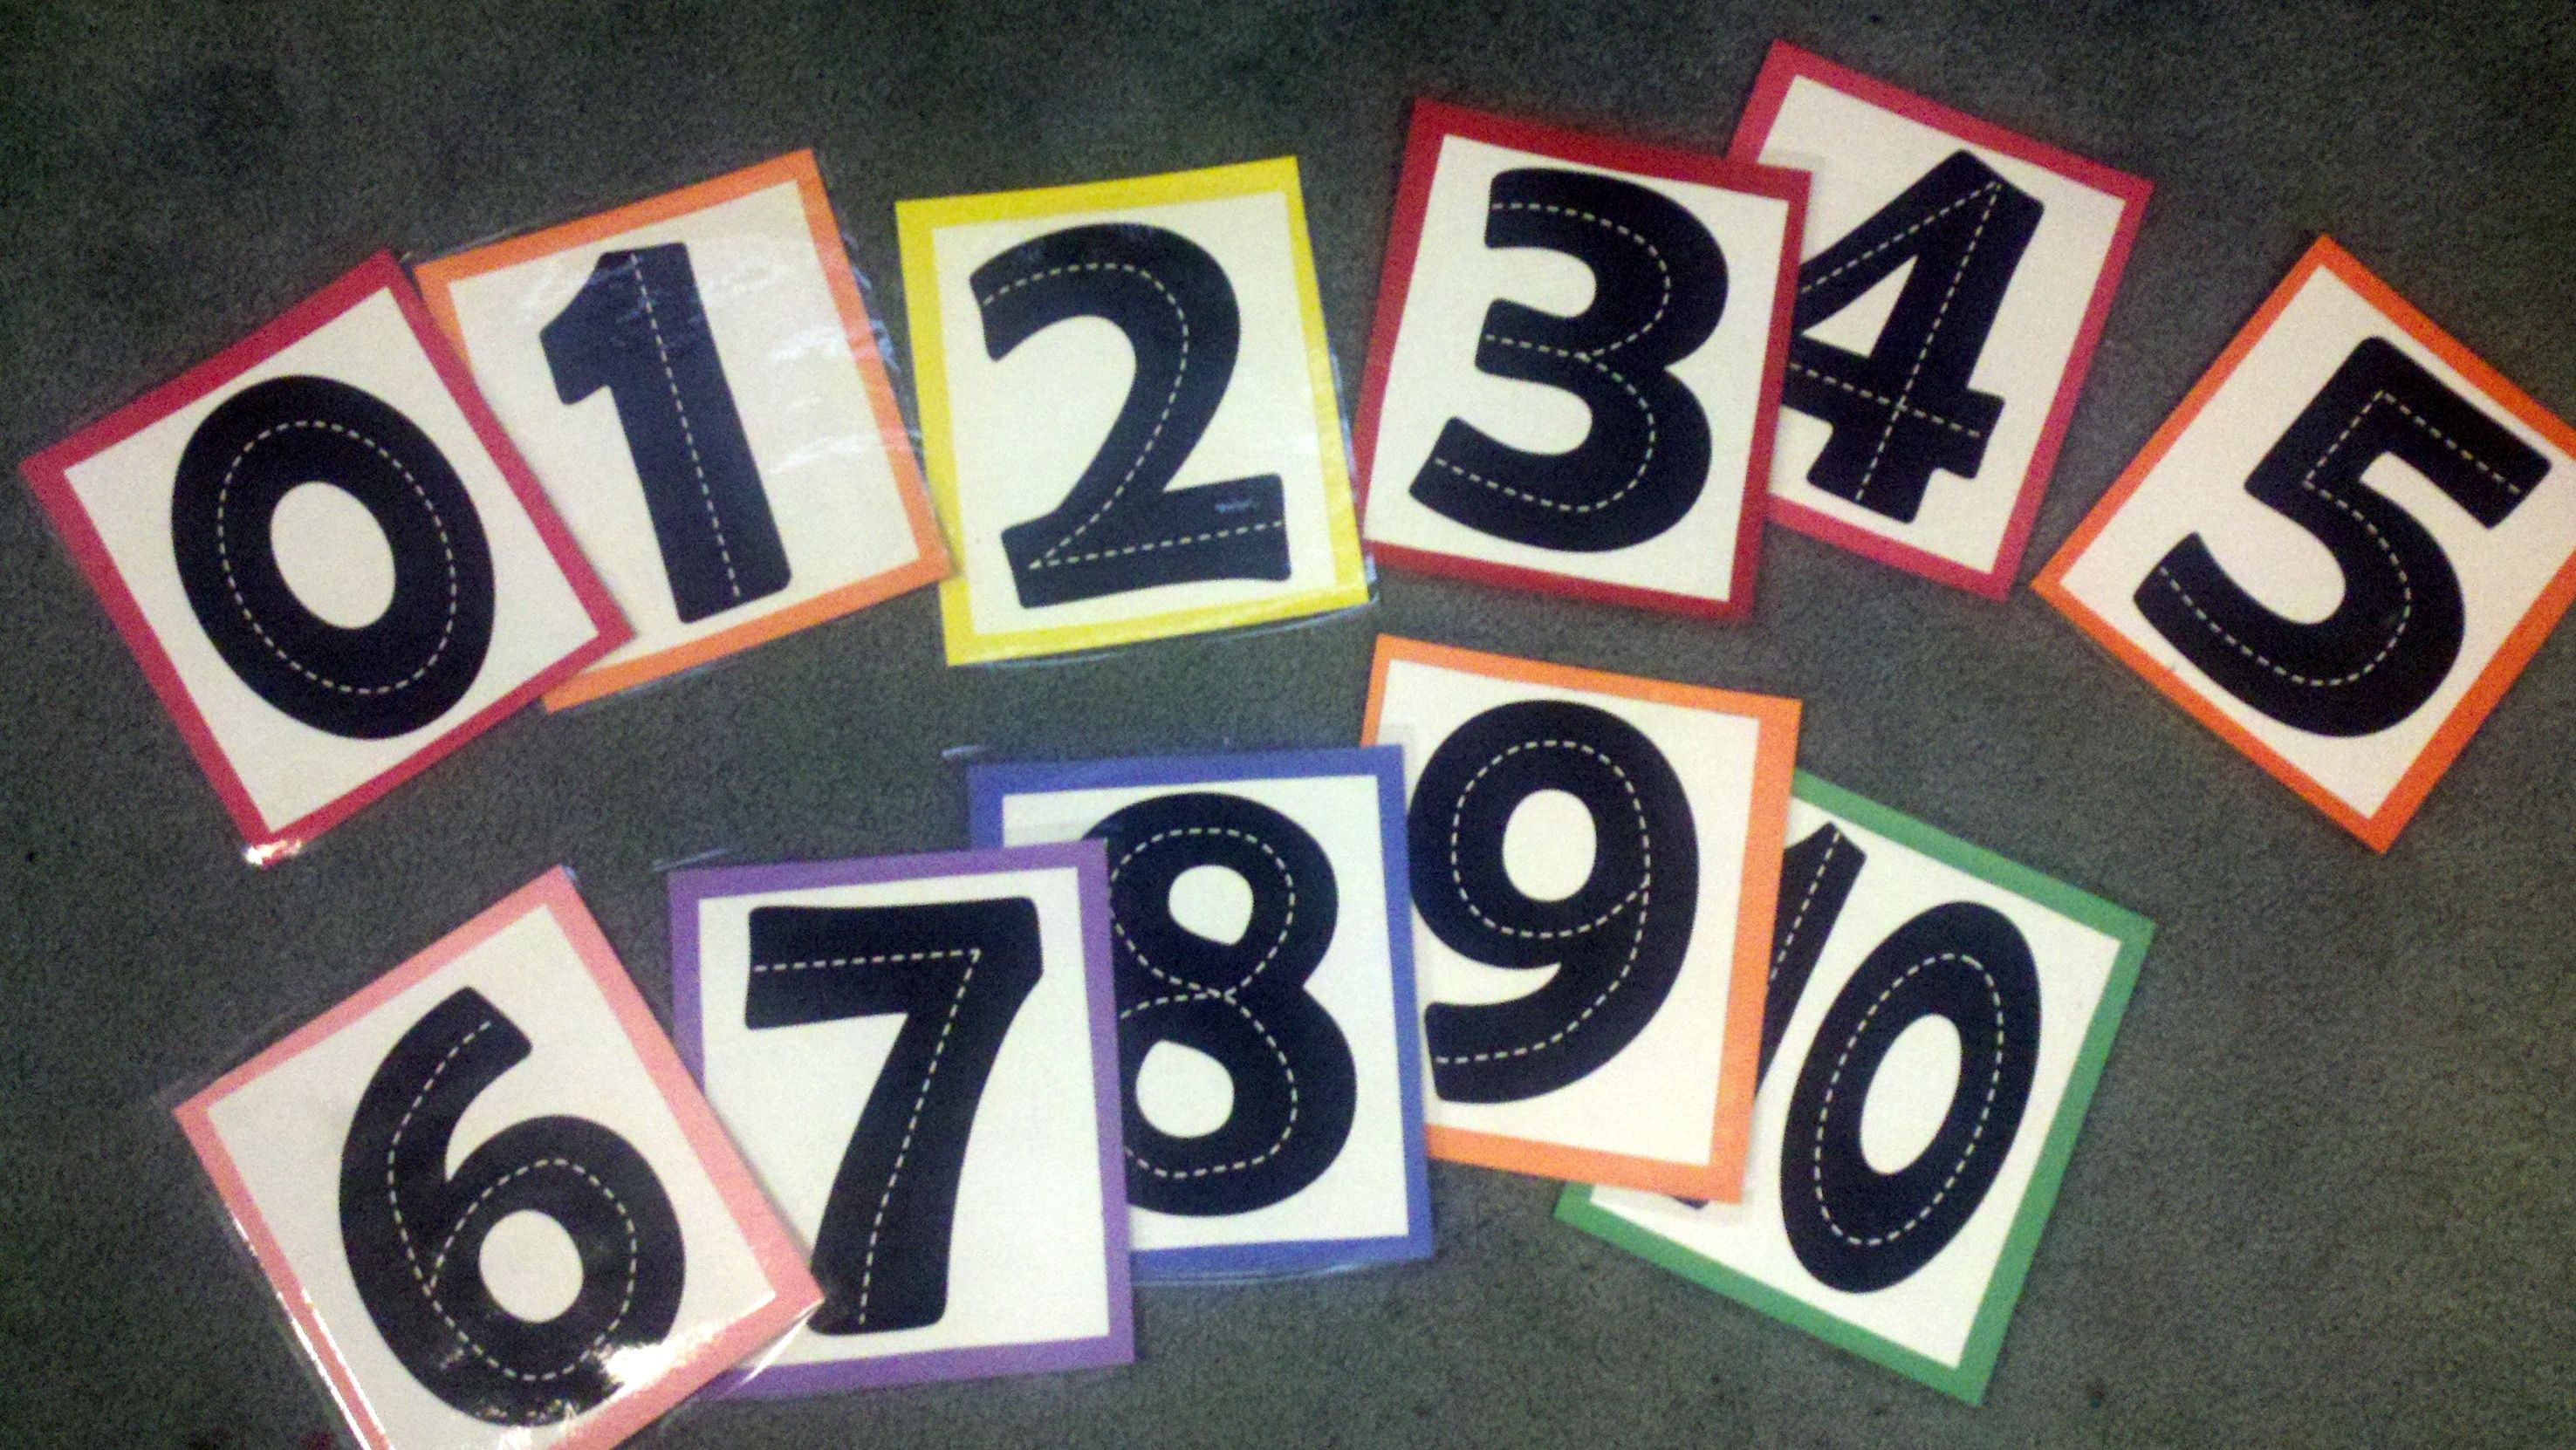 Number Highway cards (0-10) original pattern available to print for free at www.makinglearningfun.com. I just cut to smaller size, glued on construction paper, laminated, and cut again. Good for math/number learning center for Transportation theme!